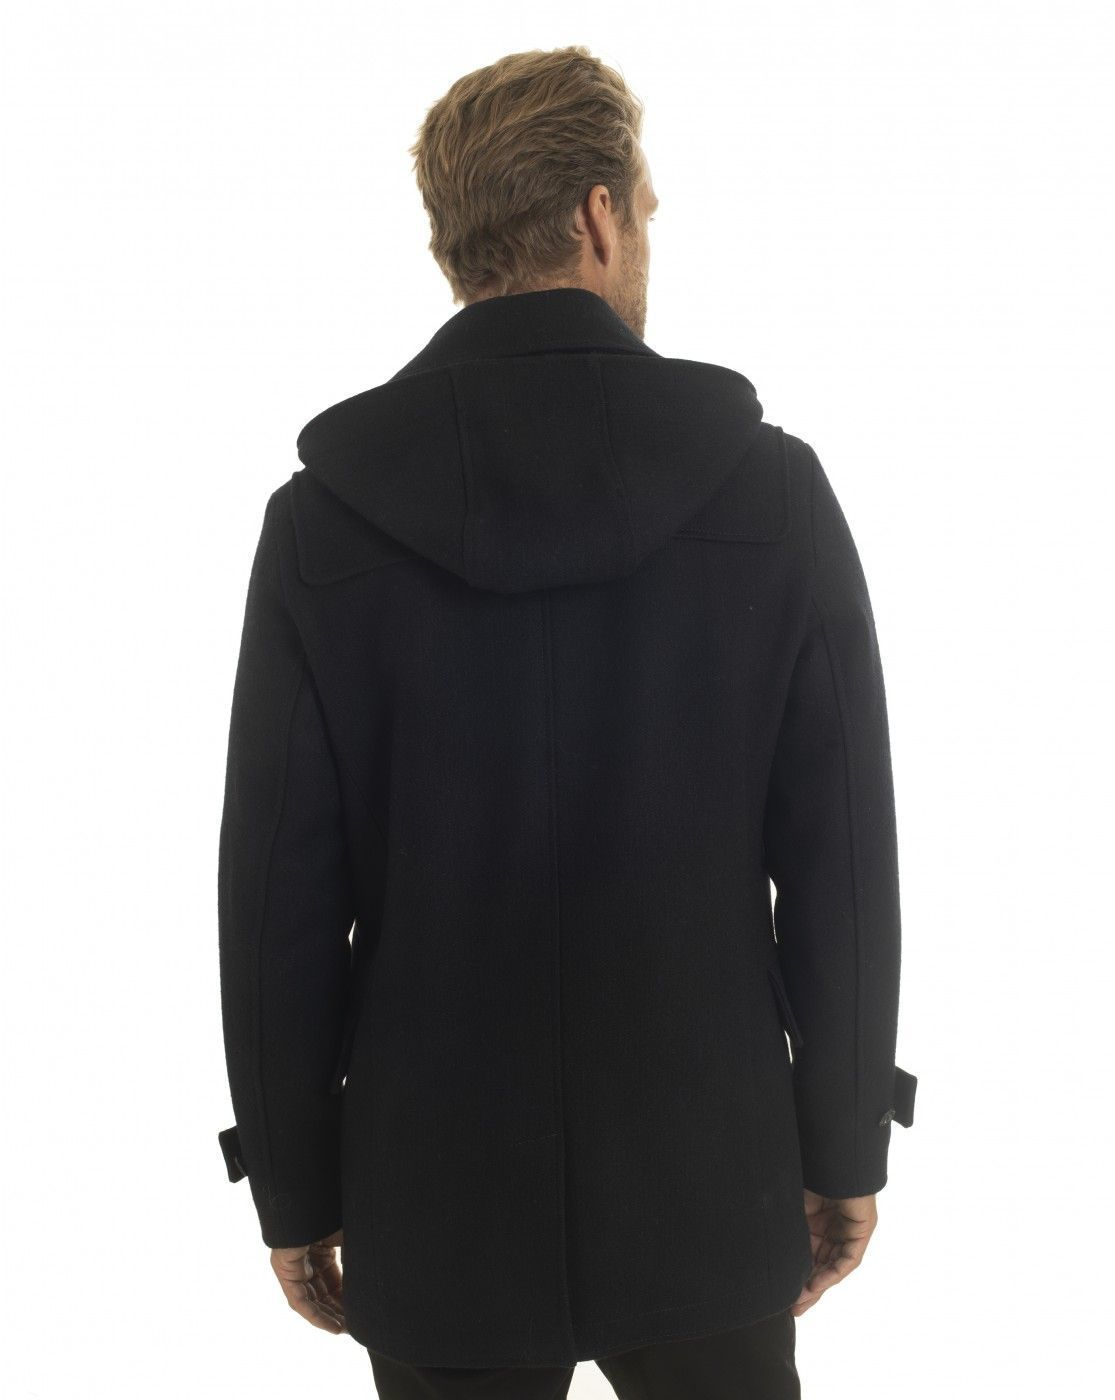 Duffle Duffle Navy Coat Navy Coat Marcello Duffle Coat Marcello Navy vwgwq5